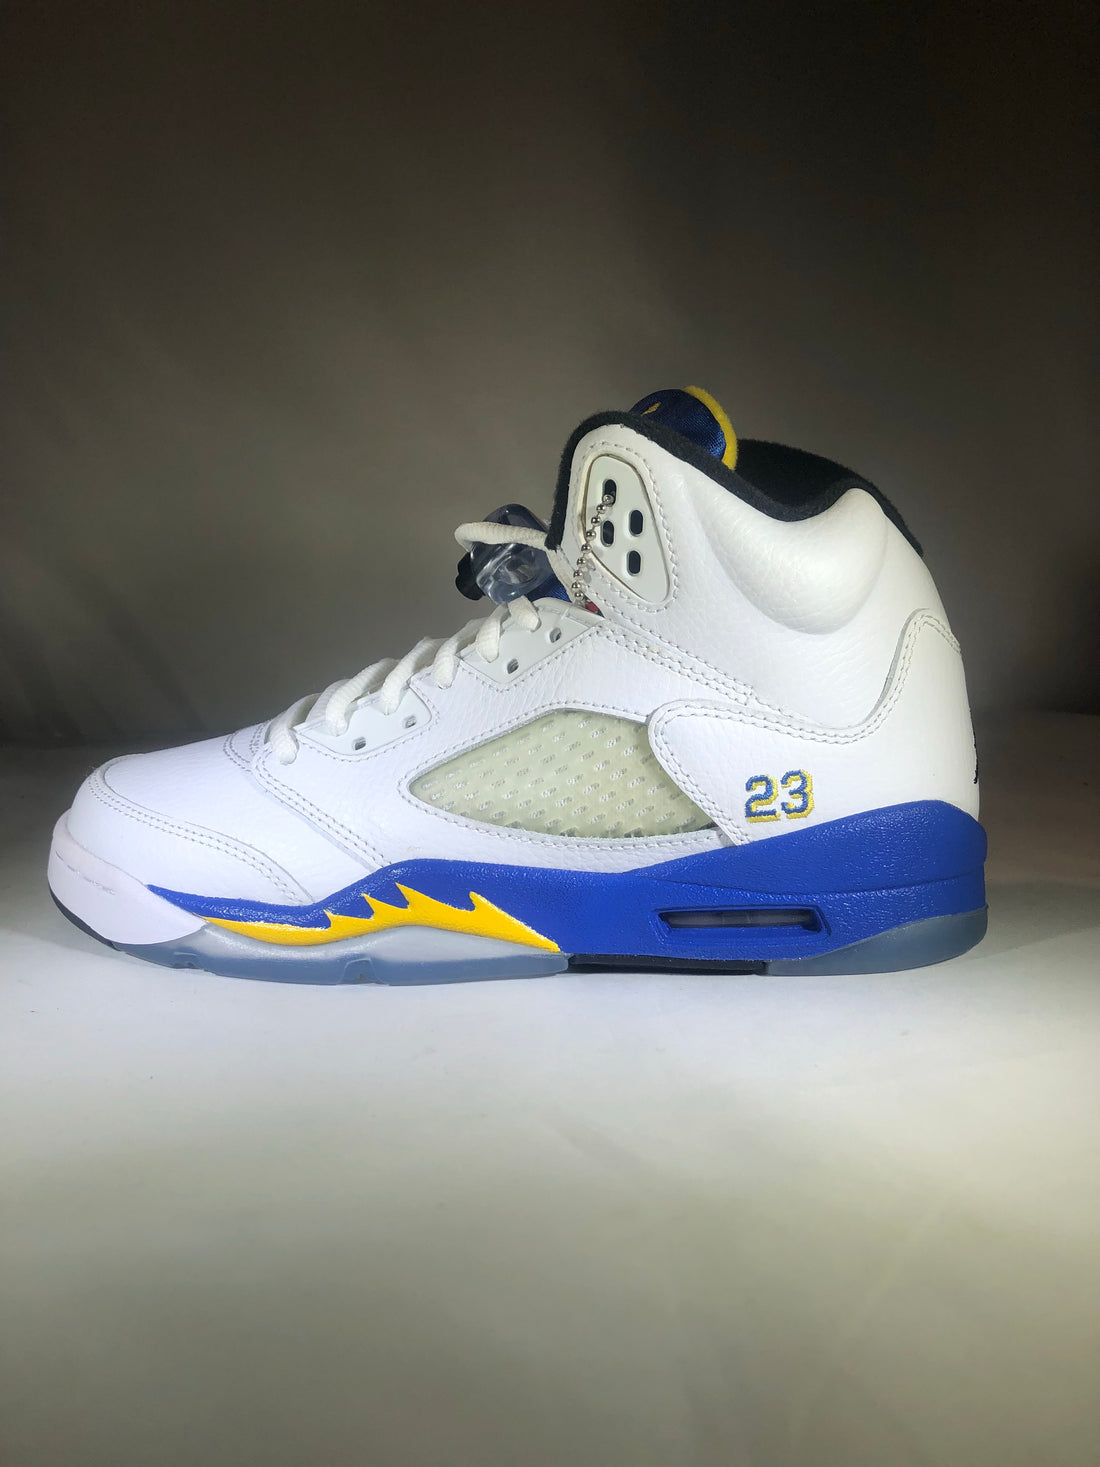 Jordan 5 Retro Laney 2013 (GS)